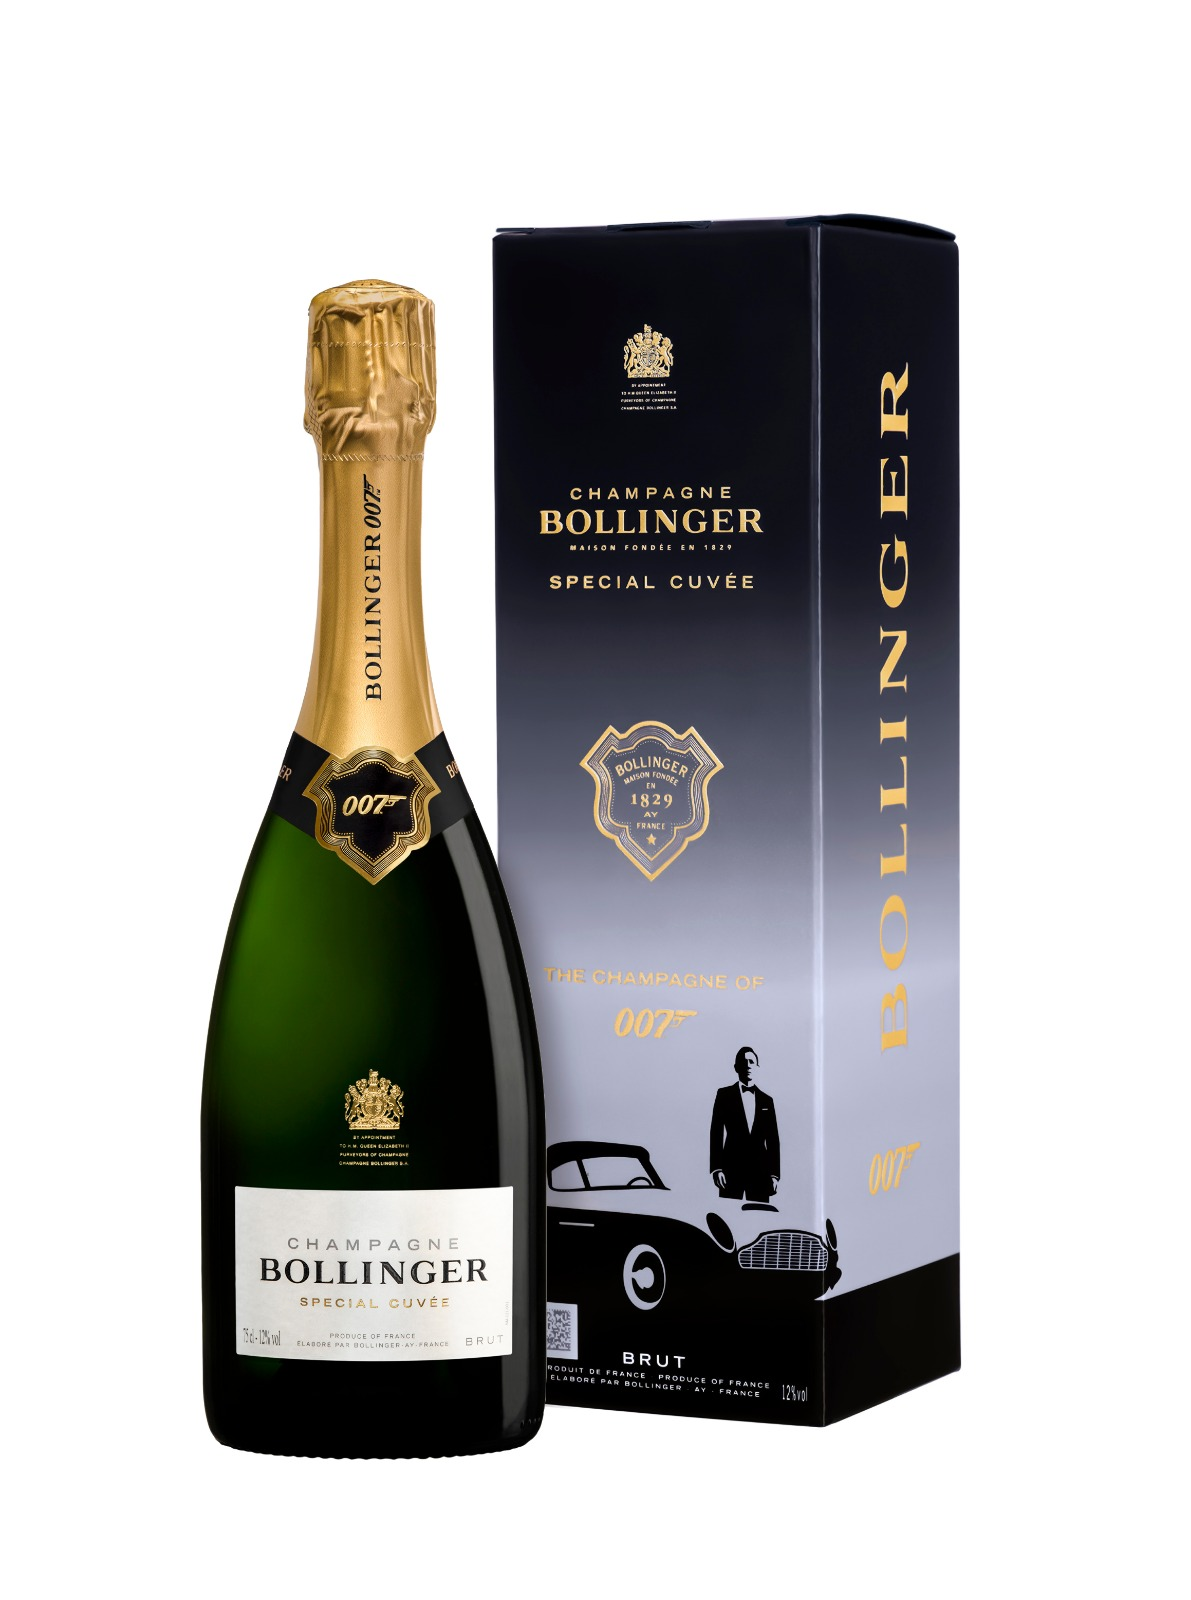 Champagne-Bollinger-Special-Cuvee-Limited-Edition-007